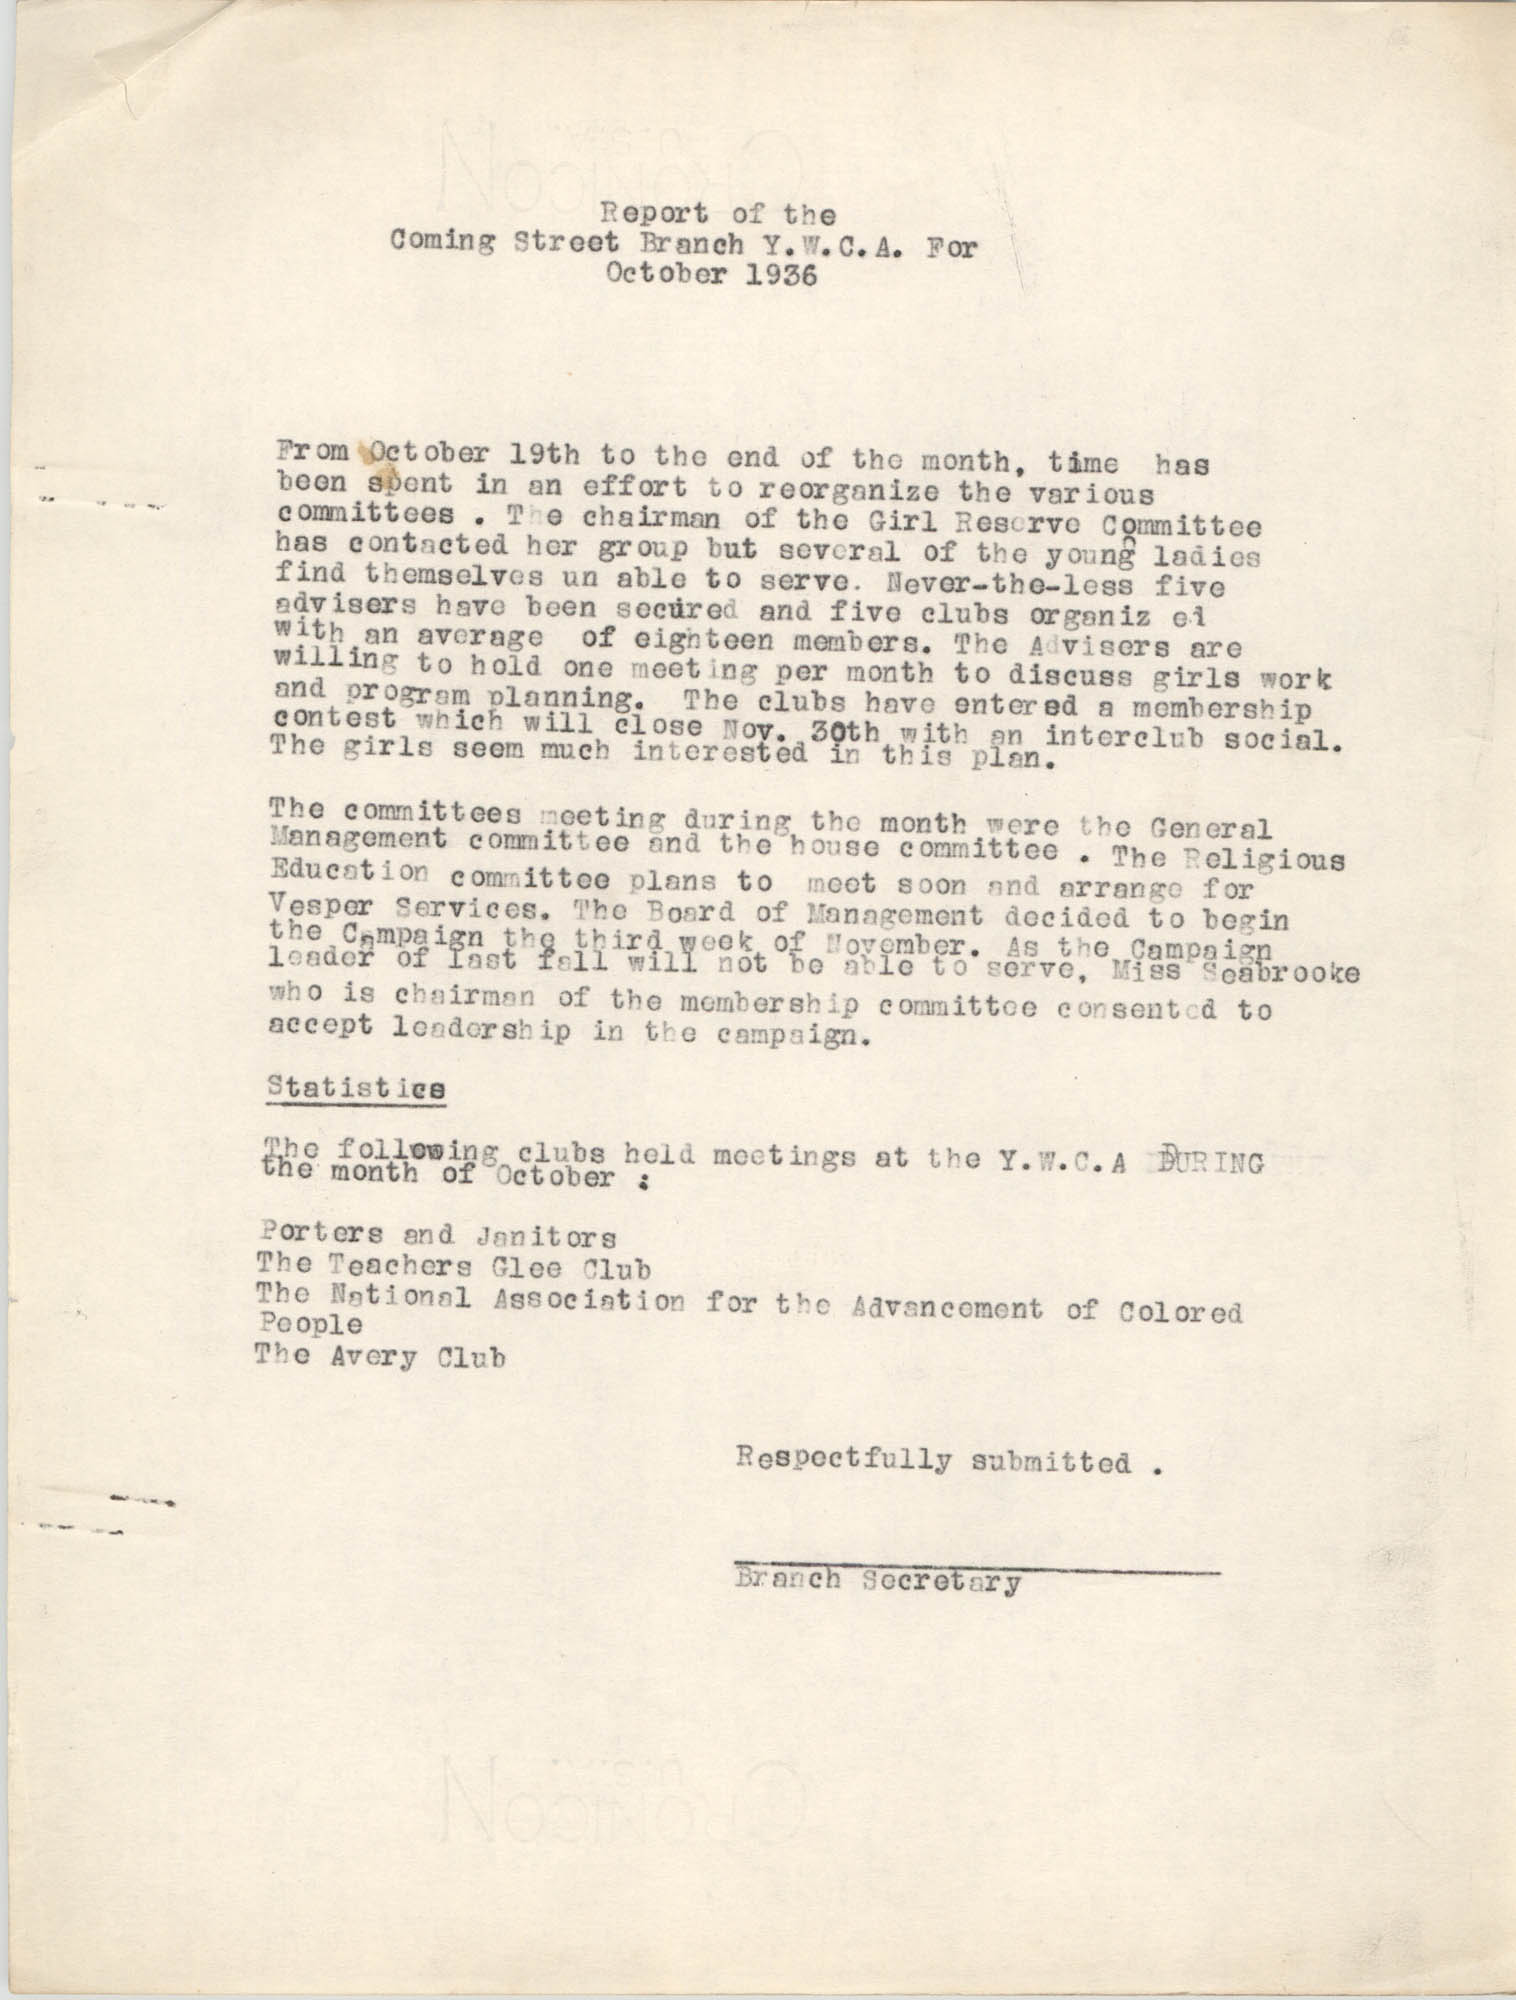 Monthly Report for the Coming Street Y.W.C.A., October 1936